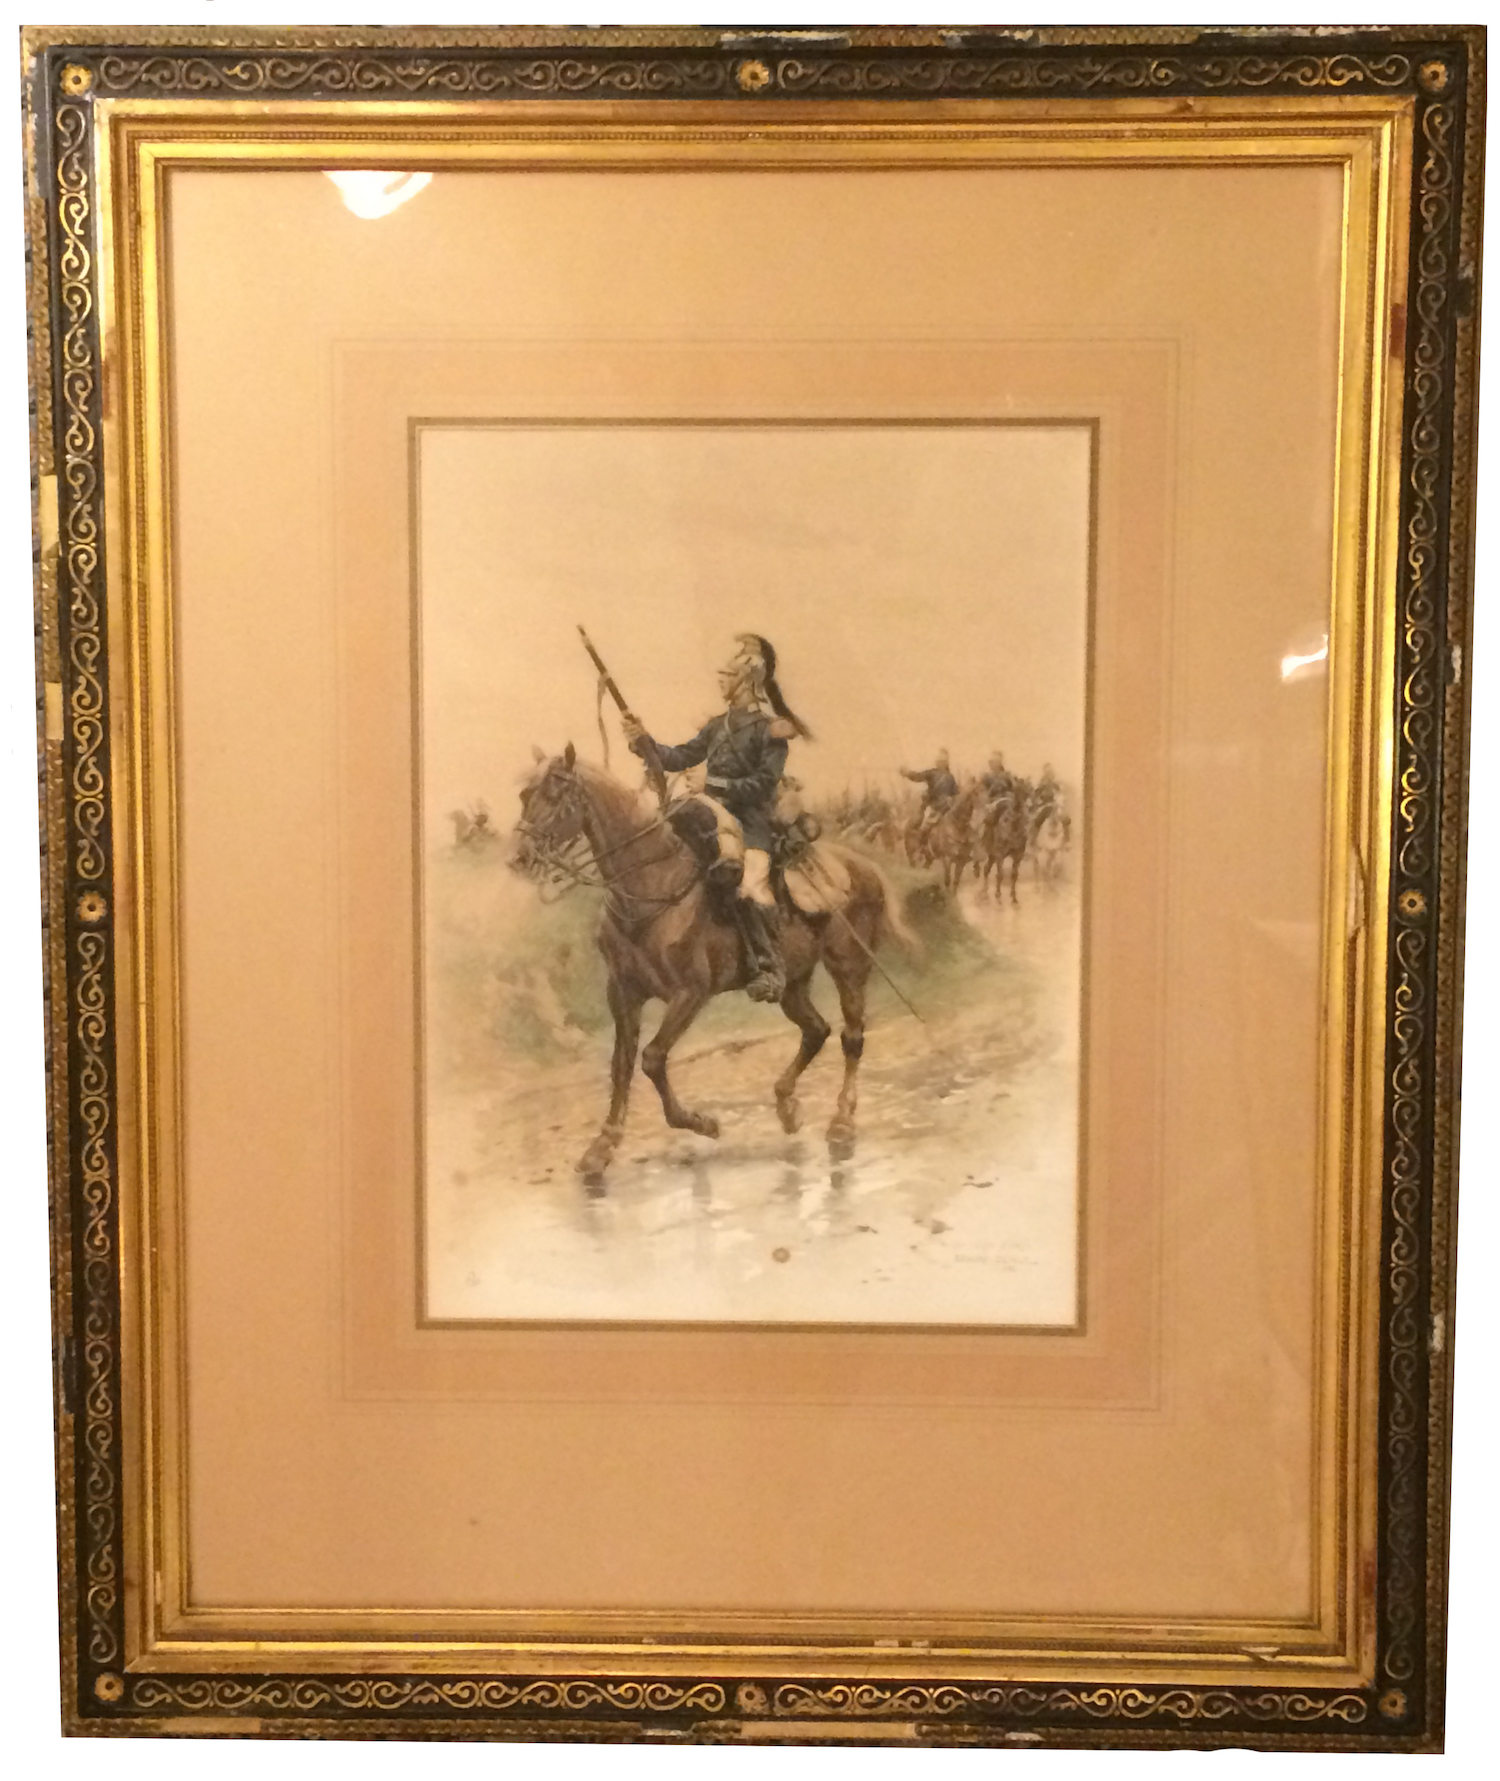 Edouard Detaille French Army Painting Soldier On Horse | Modernism